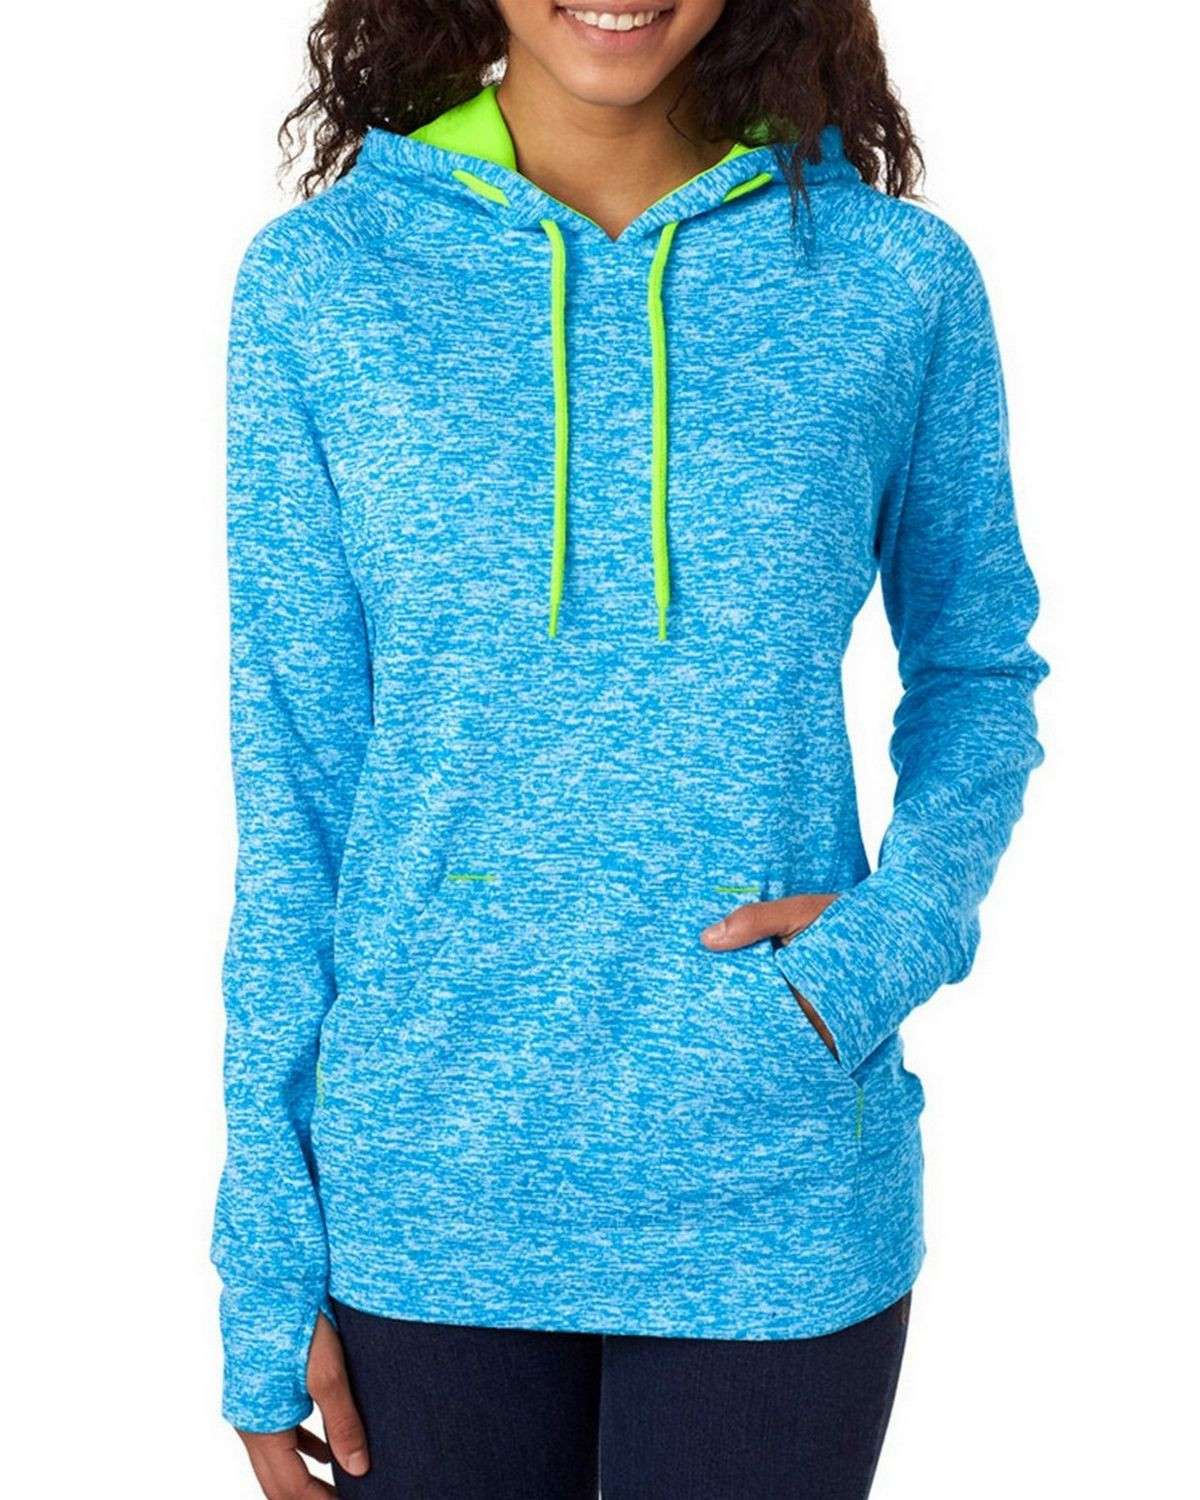 J America J8616 Ladies Pullover Hooded Fleece - Ice Grey/Neon Green - M J8616